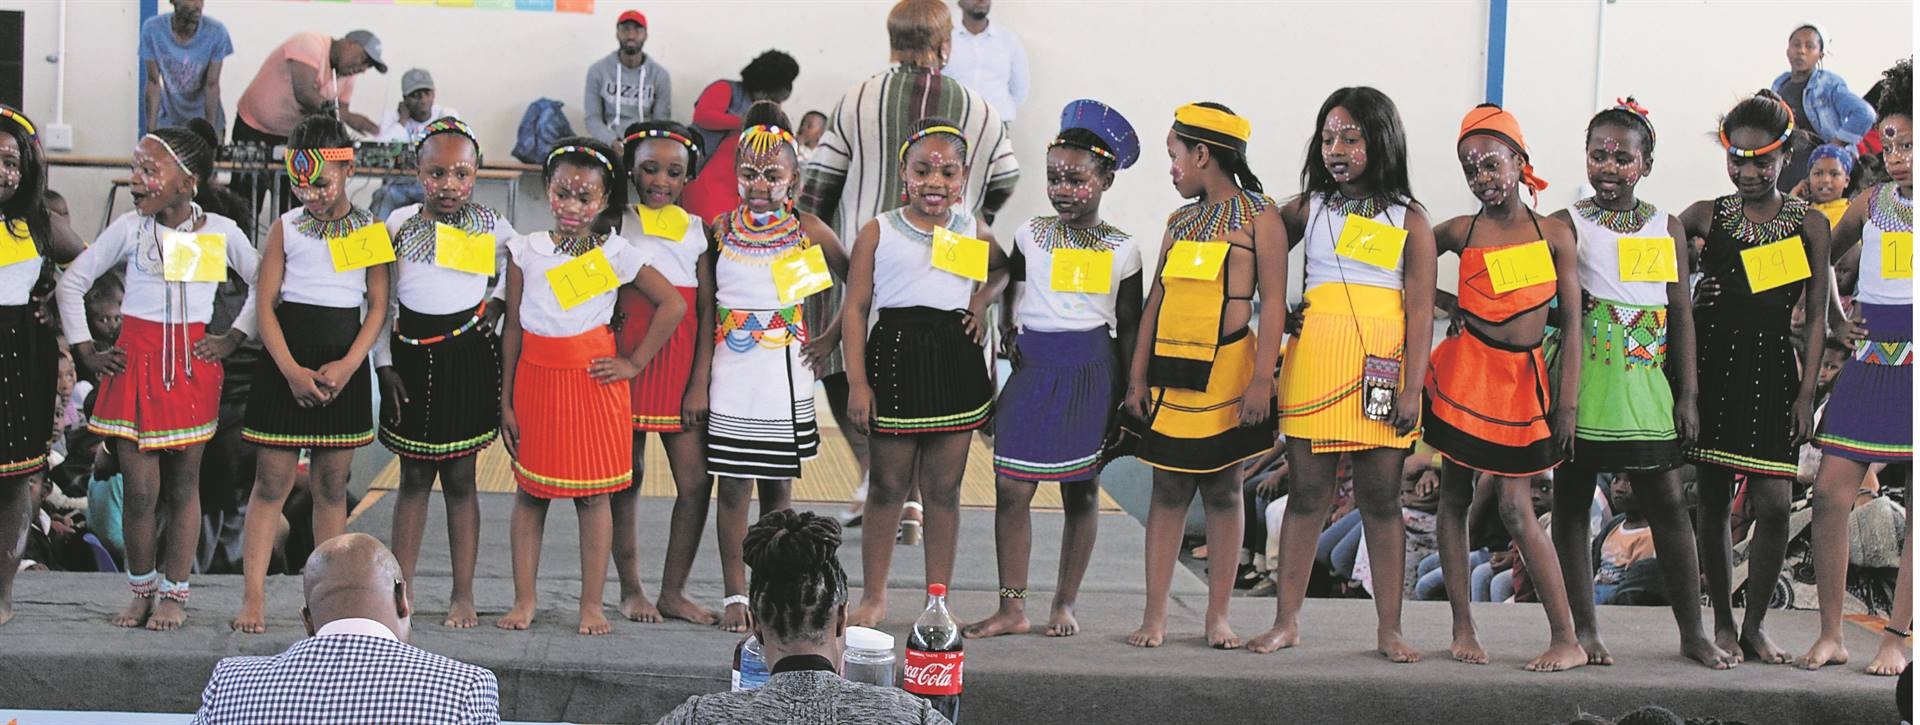 The Mr and Miss Silukhanyo Primary School pageant was held at the school on Friday 23 August. Here foundation phase learners show off their best poses to the judging panel.